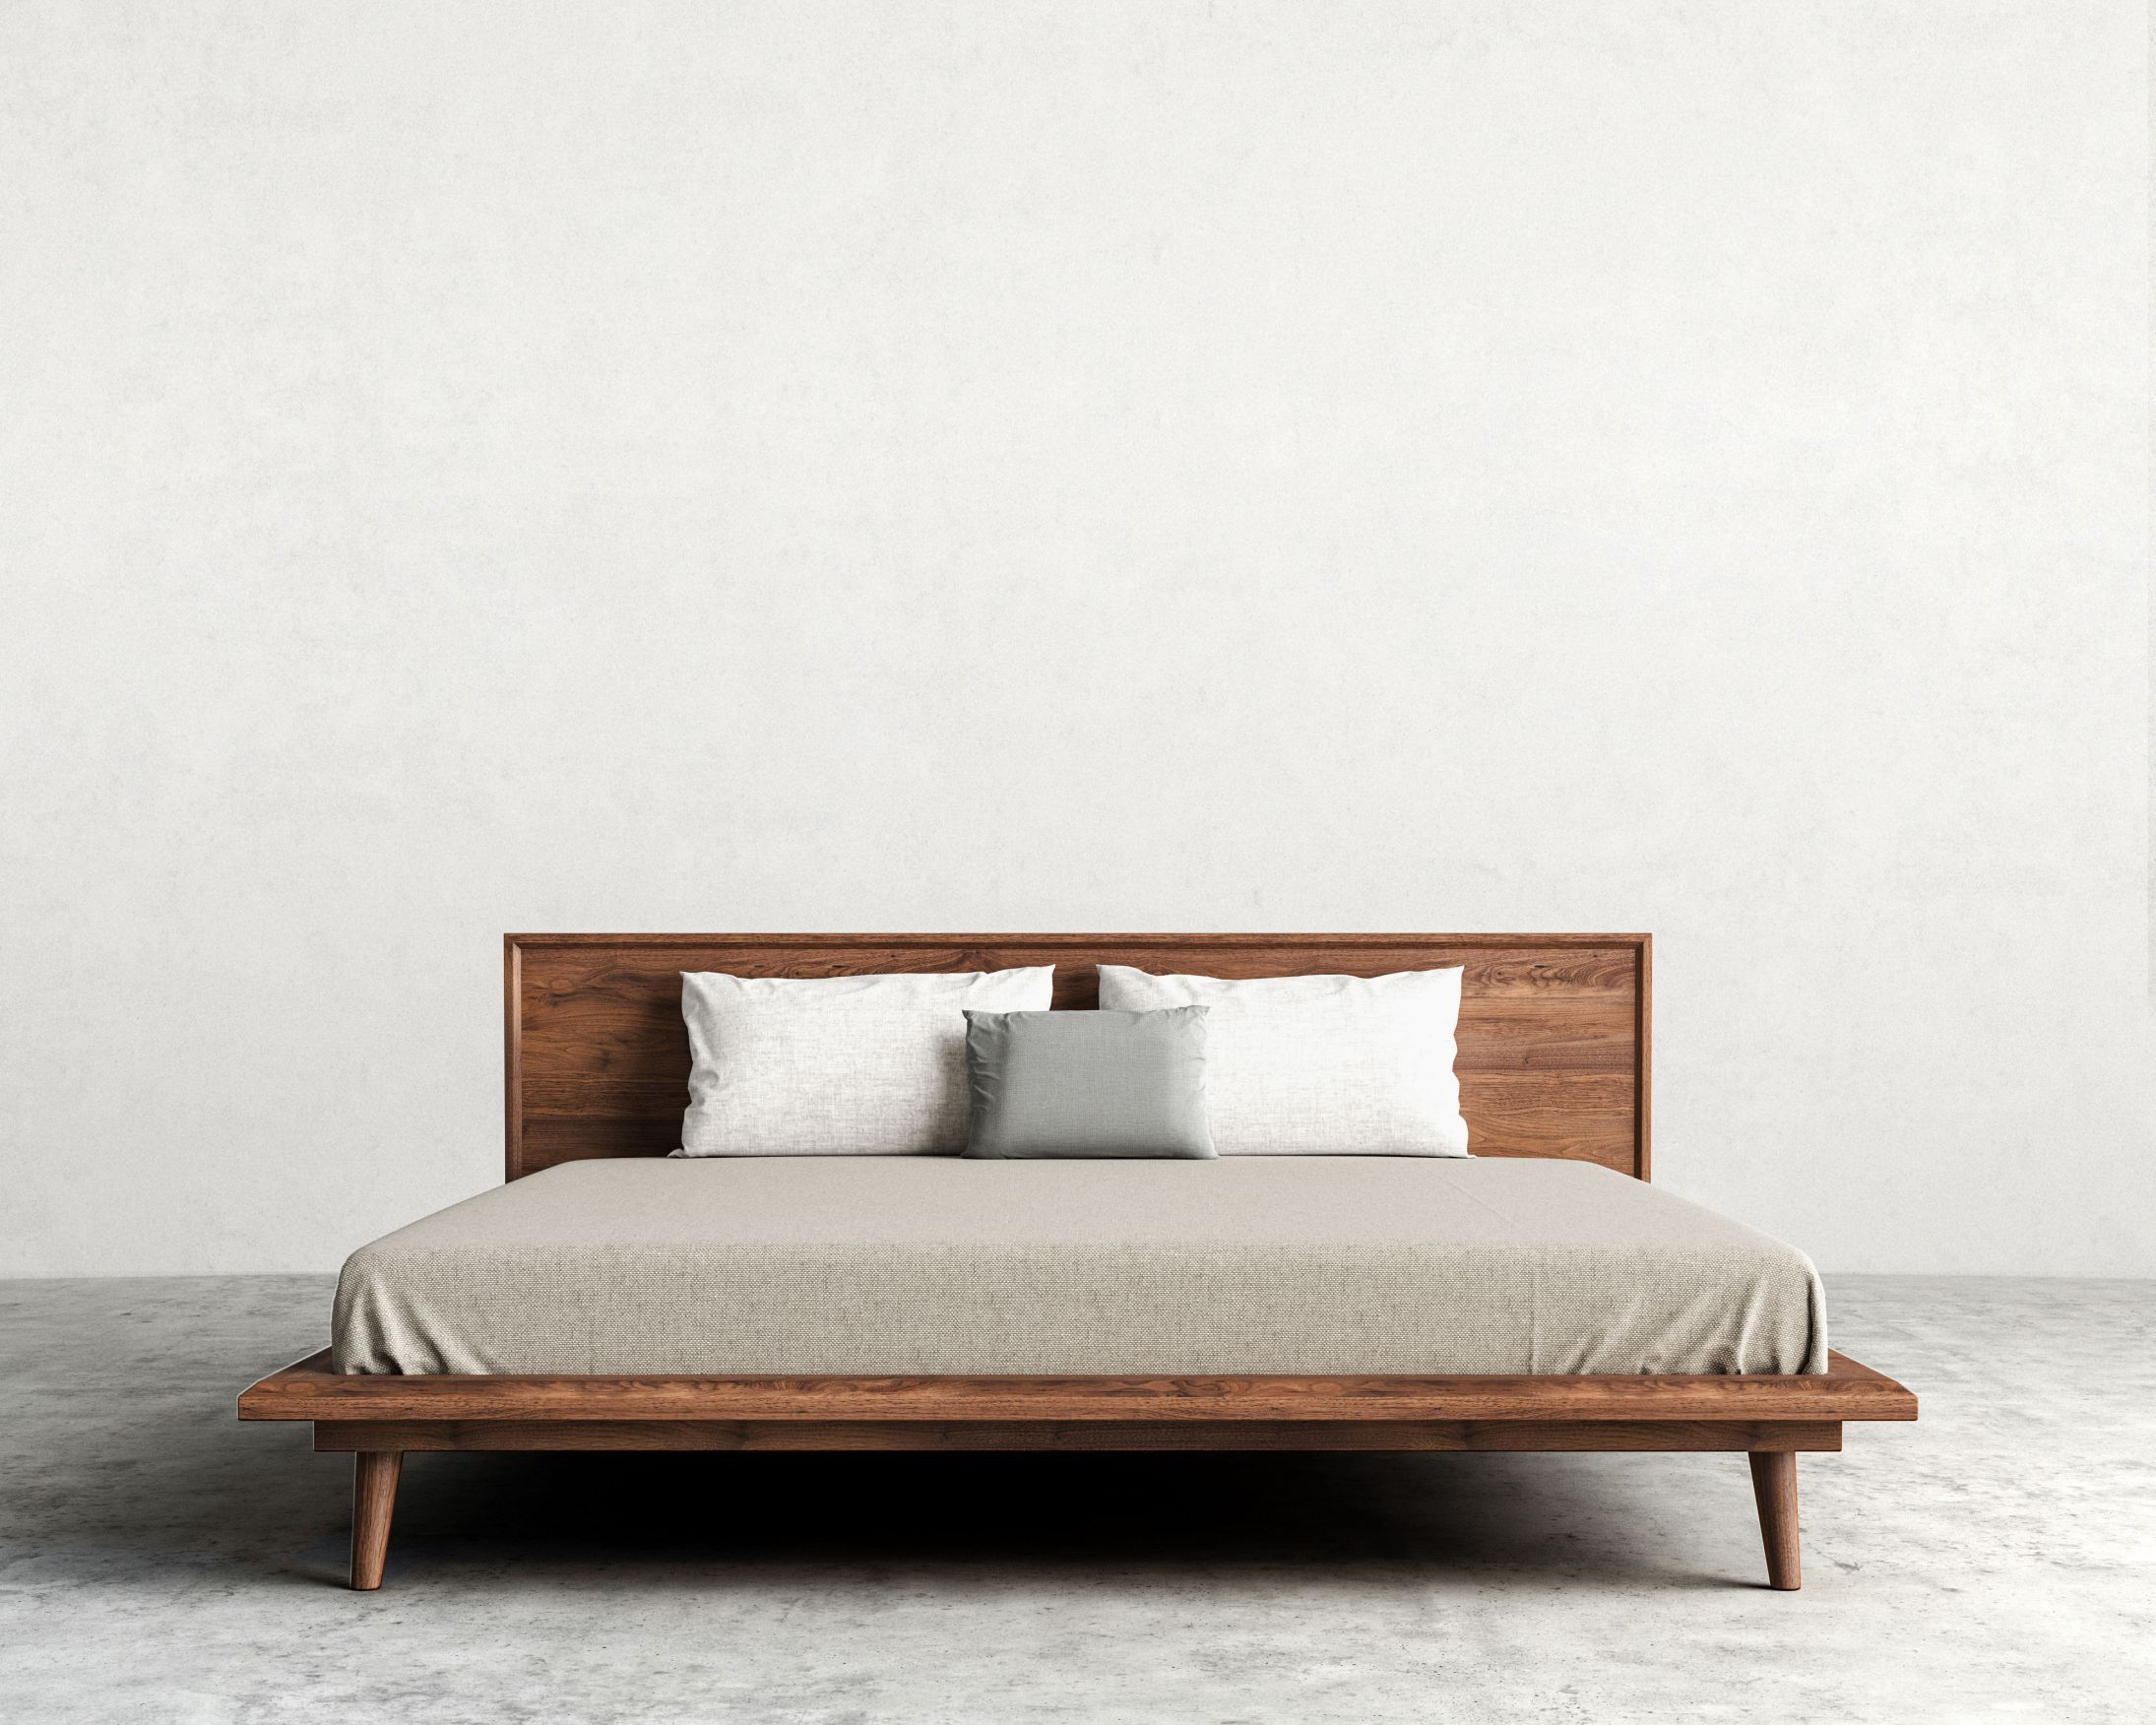 mid century modern inspired furniture. Asher Is A Mid-century Modern Inspired Bed With Tapered Legs And Beautiful Dark-stained Walnut Veneer, Available In Queen Or King. Mid Century Furniture